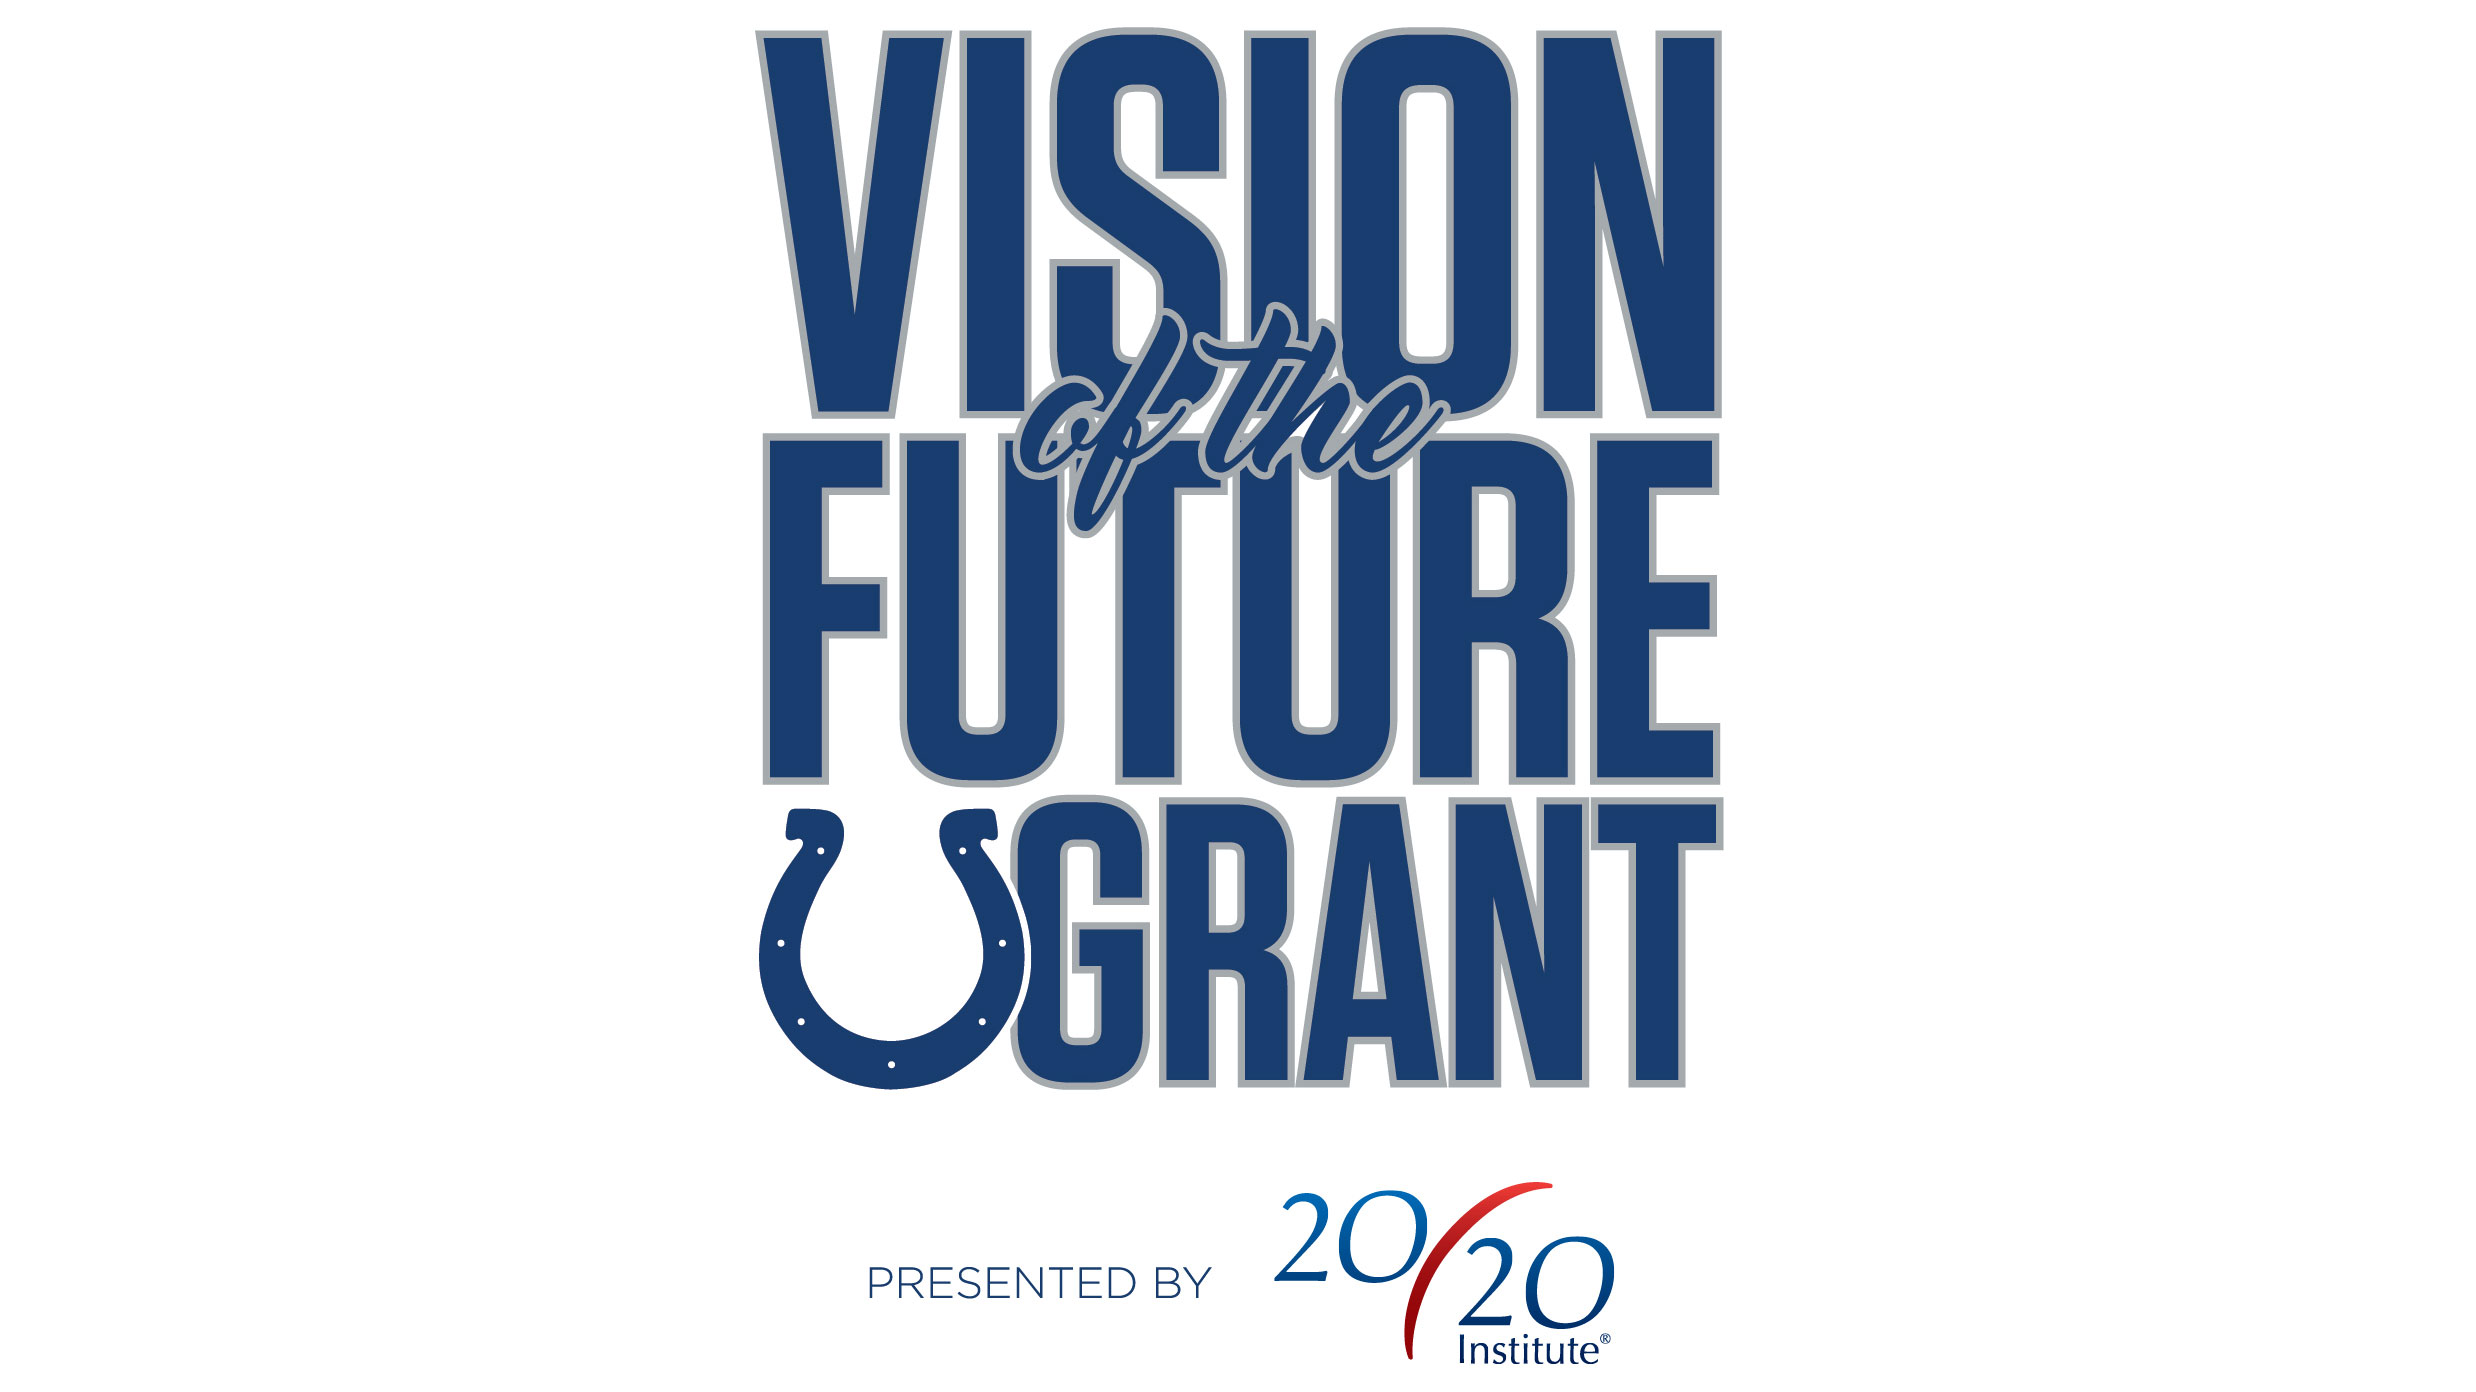 Vision of the Future Grant